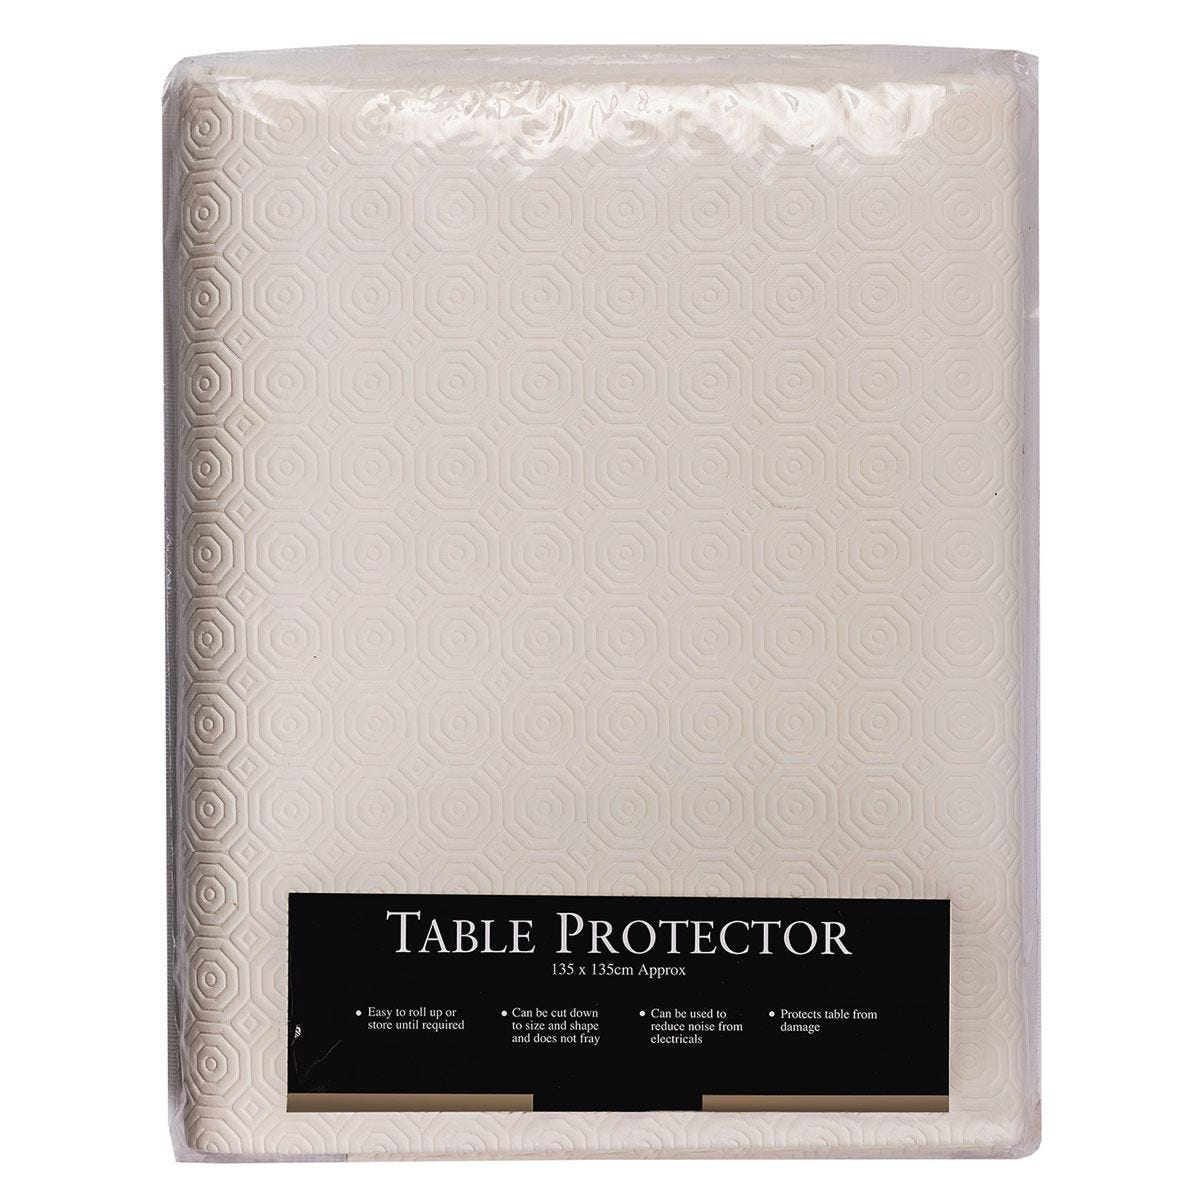 Le Chateau PVC Table Protector - Ivory